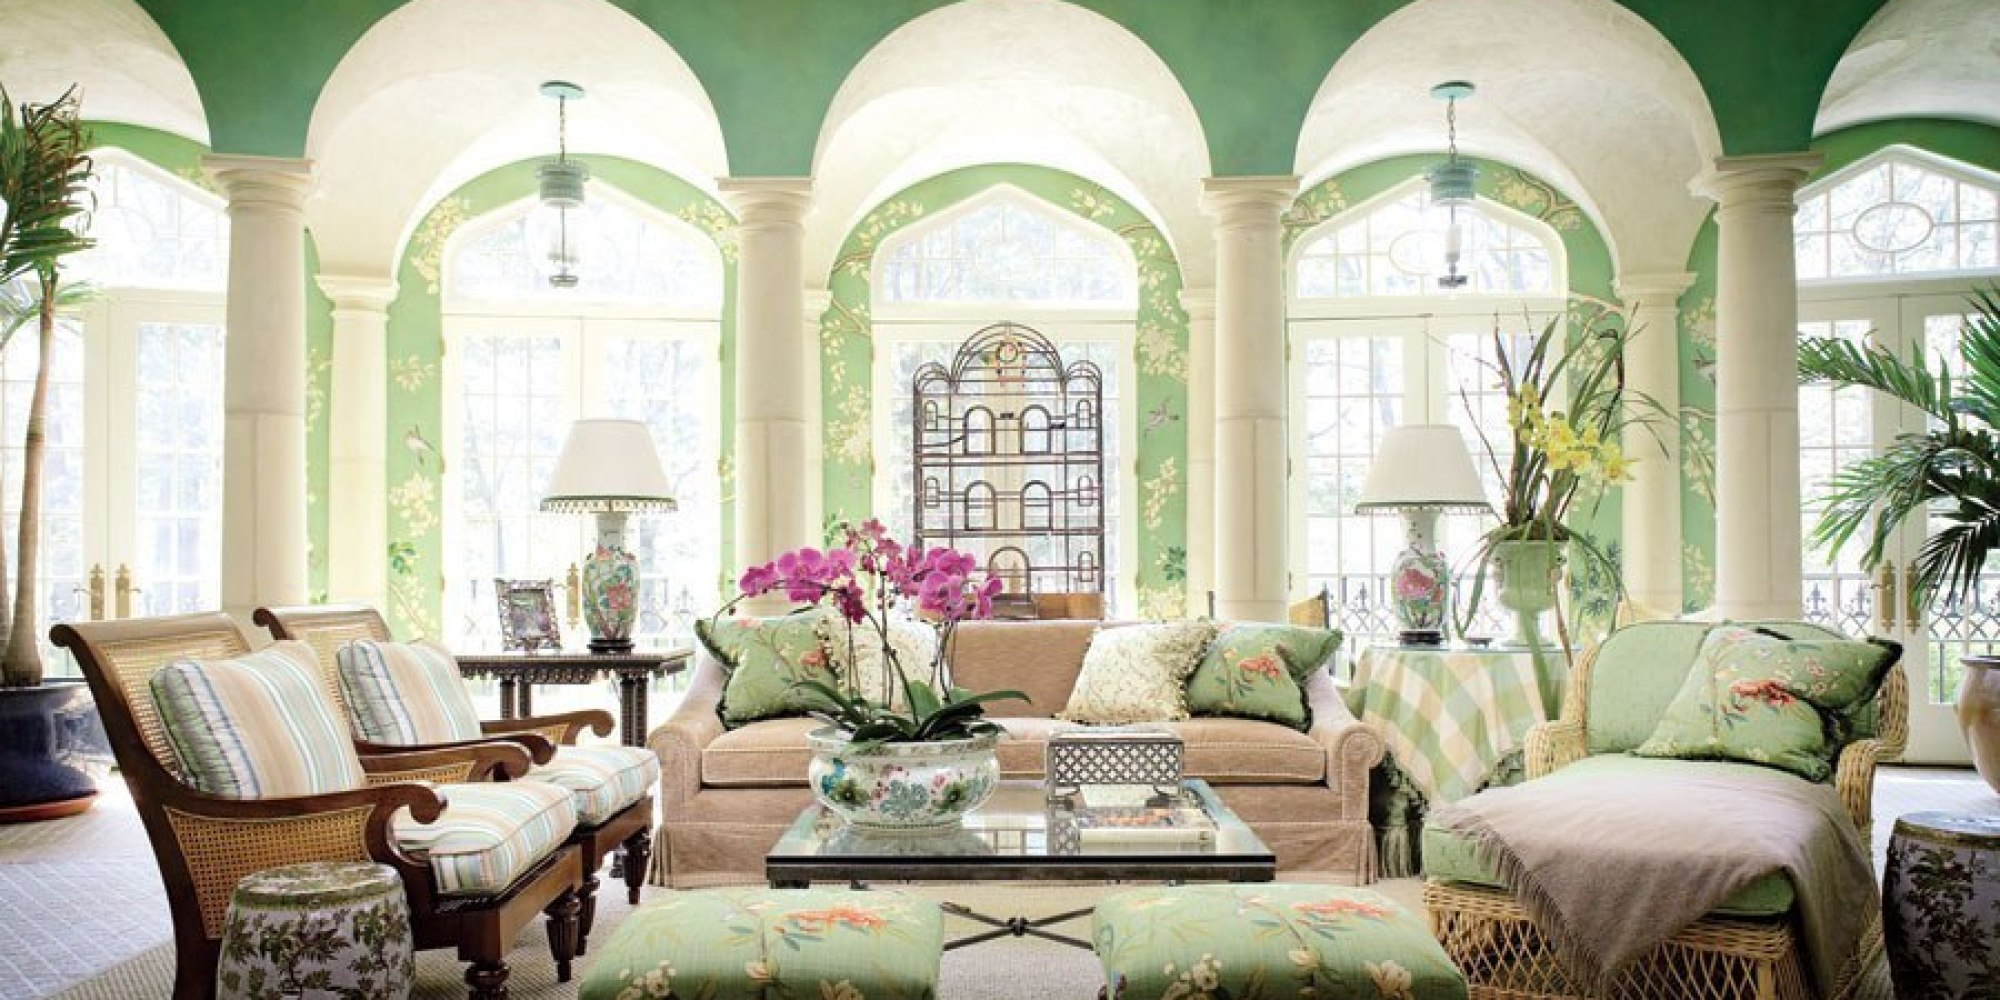 6 Amazing Home Renovations You Have To See To Believe